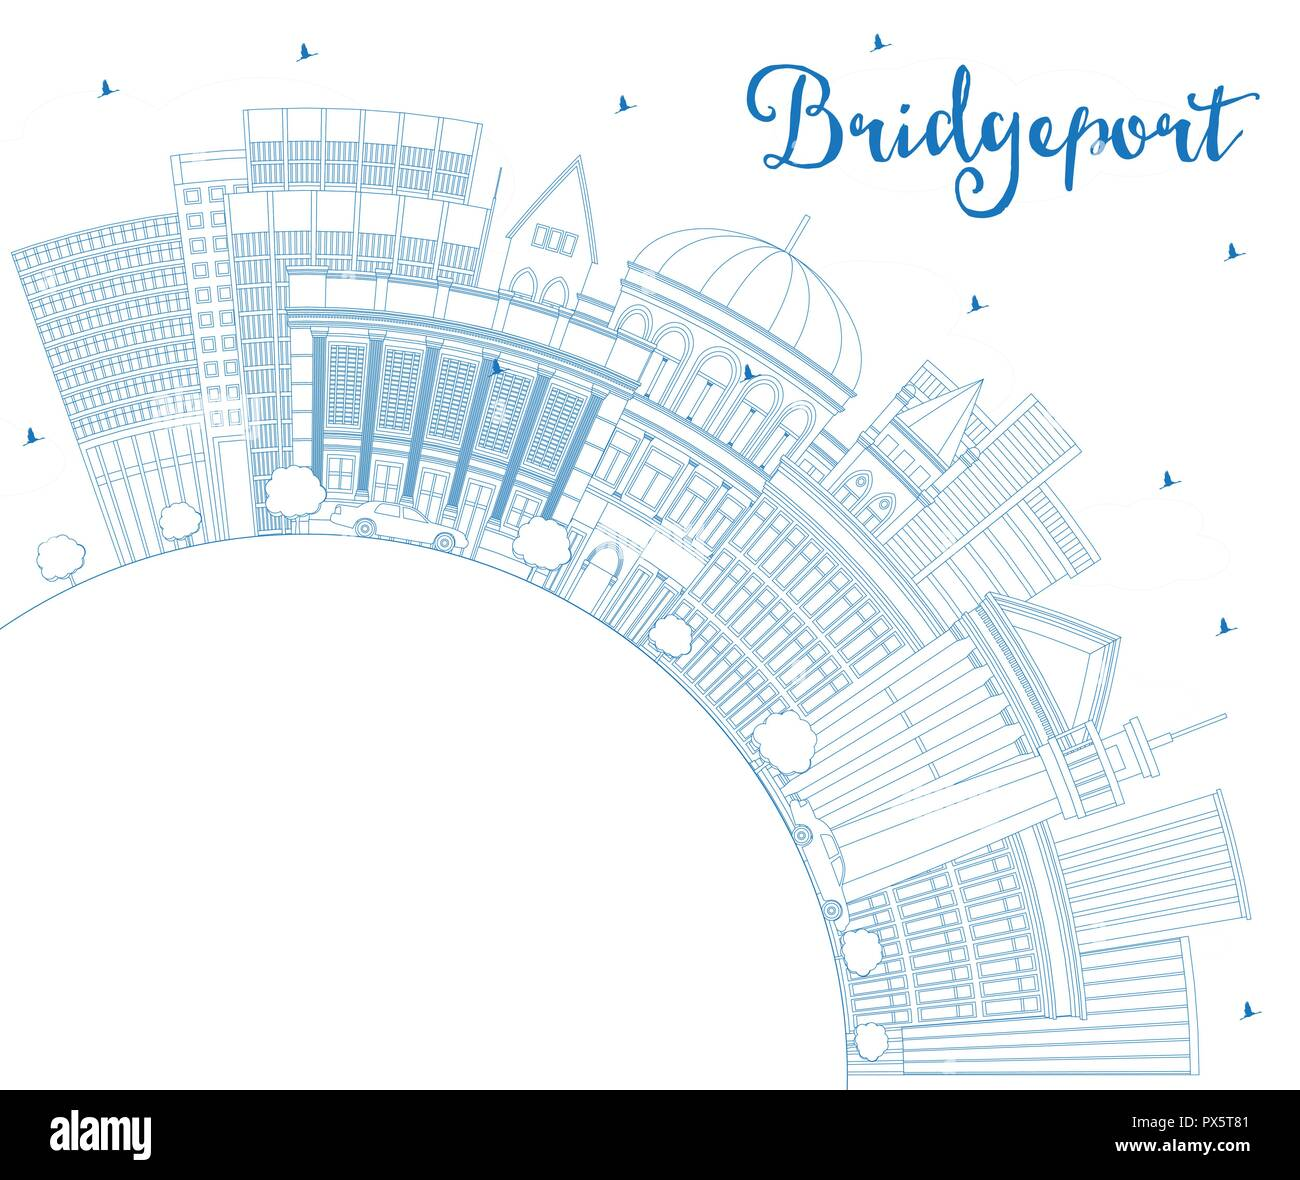 Outline Bridgeport Connecticut City Skyline with Blue Buildings and Copy Space. Vector Illustration. Travel and Tourism Concept Stock Vector